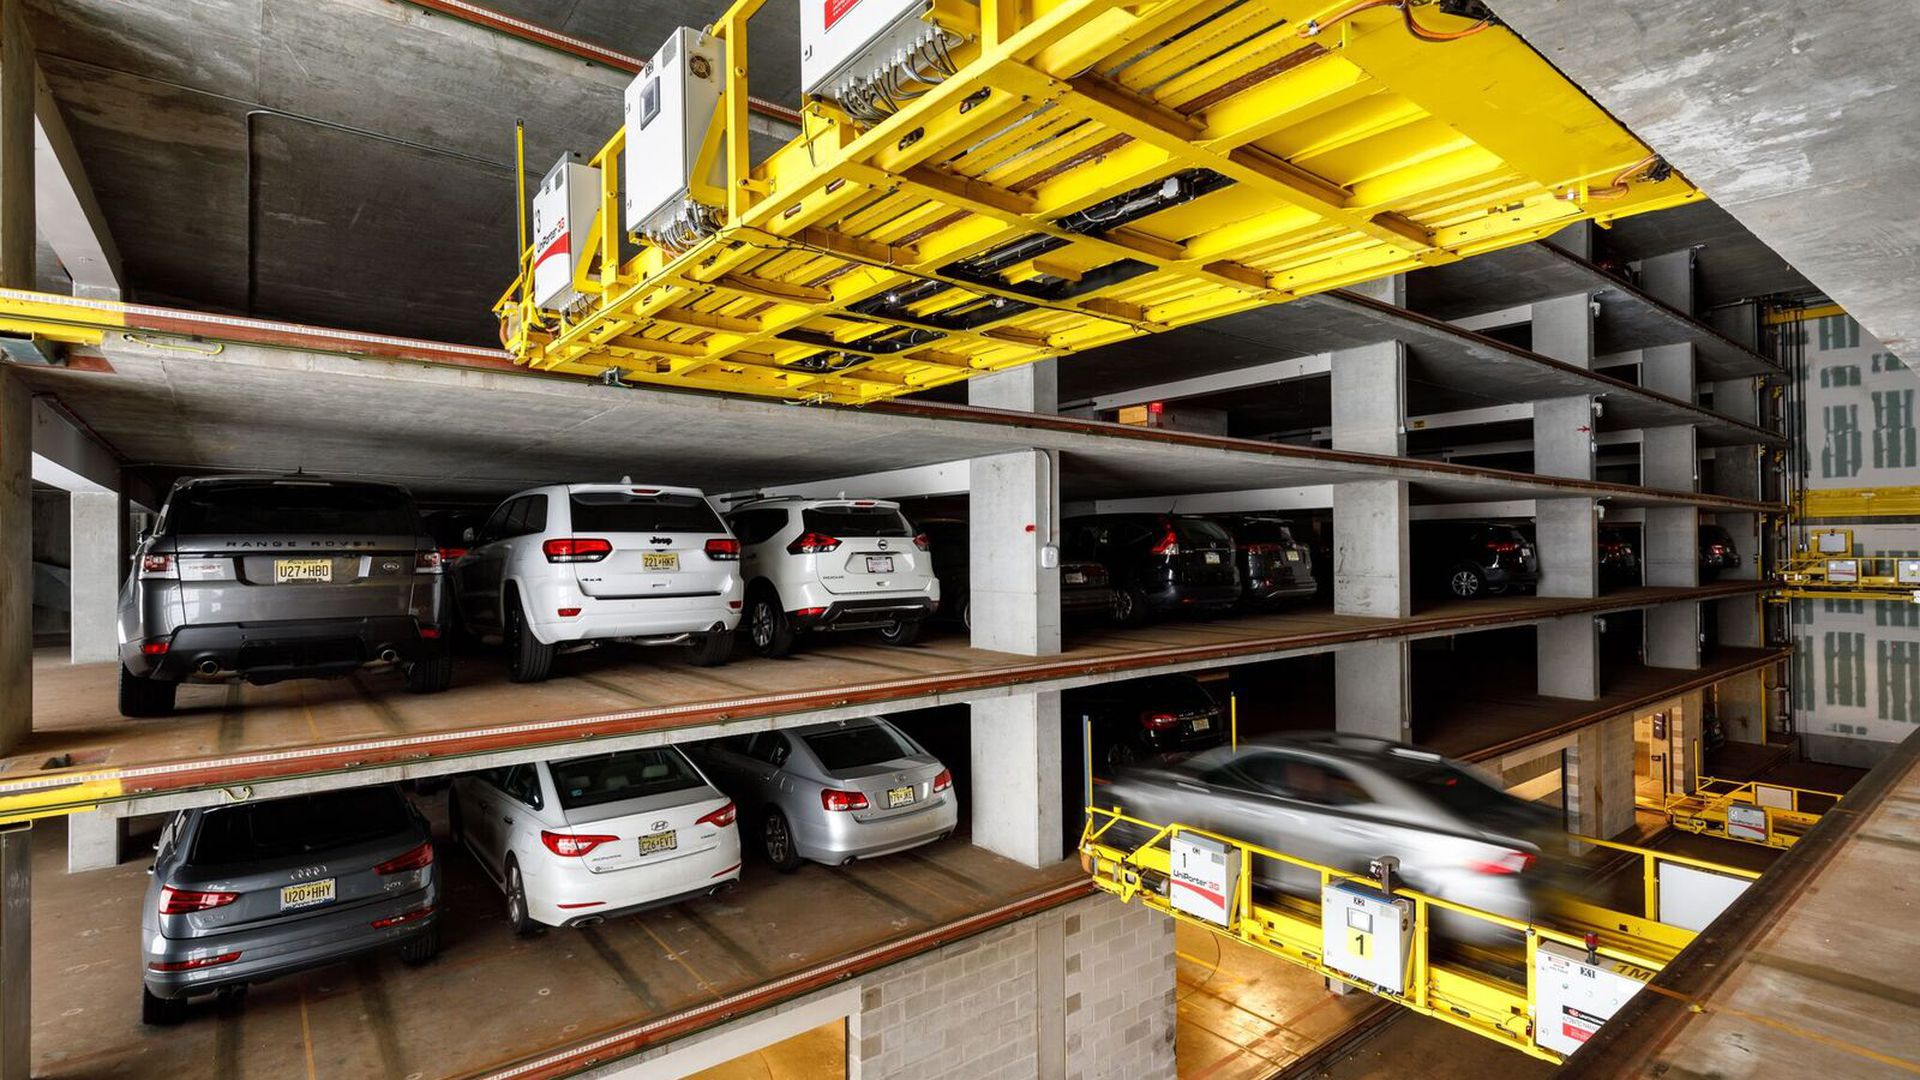 U-tron's automated parking garage packs cars close together.